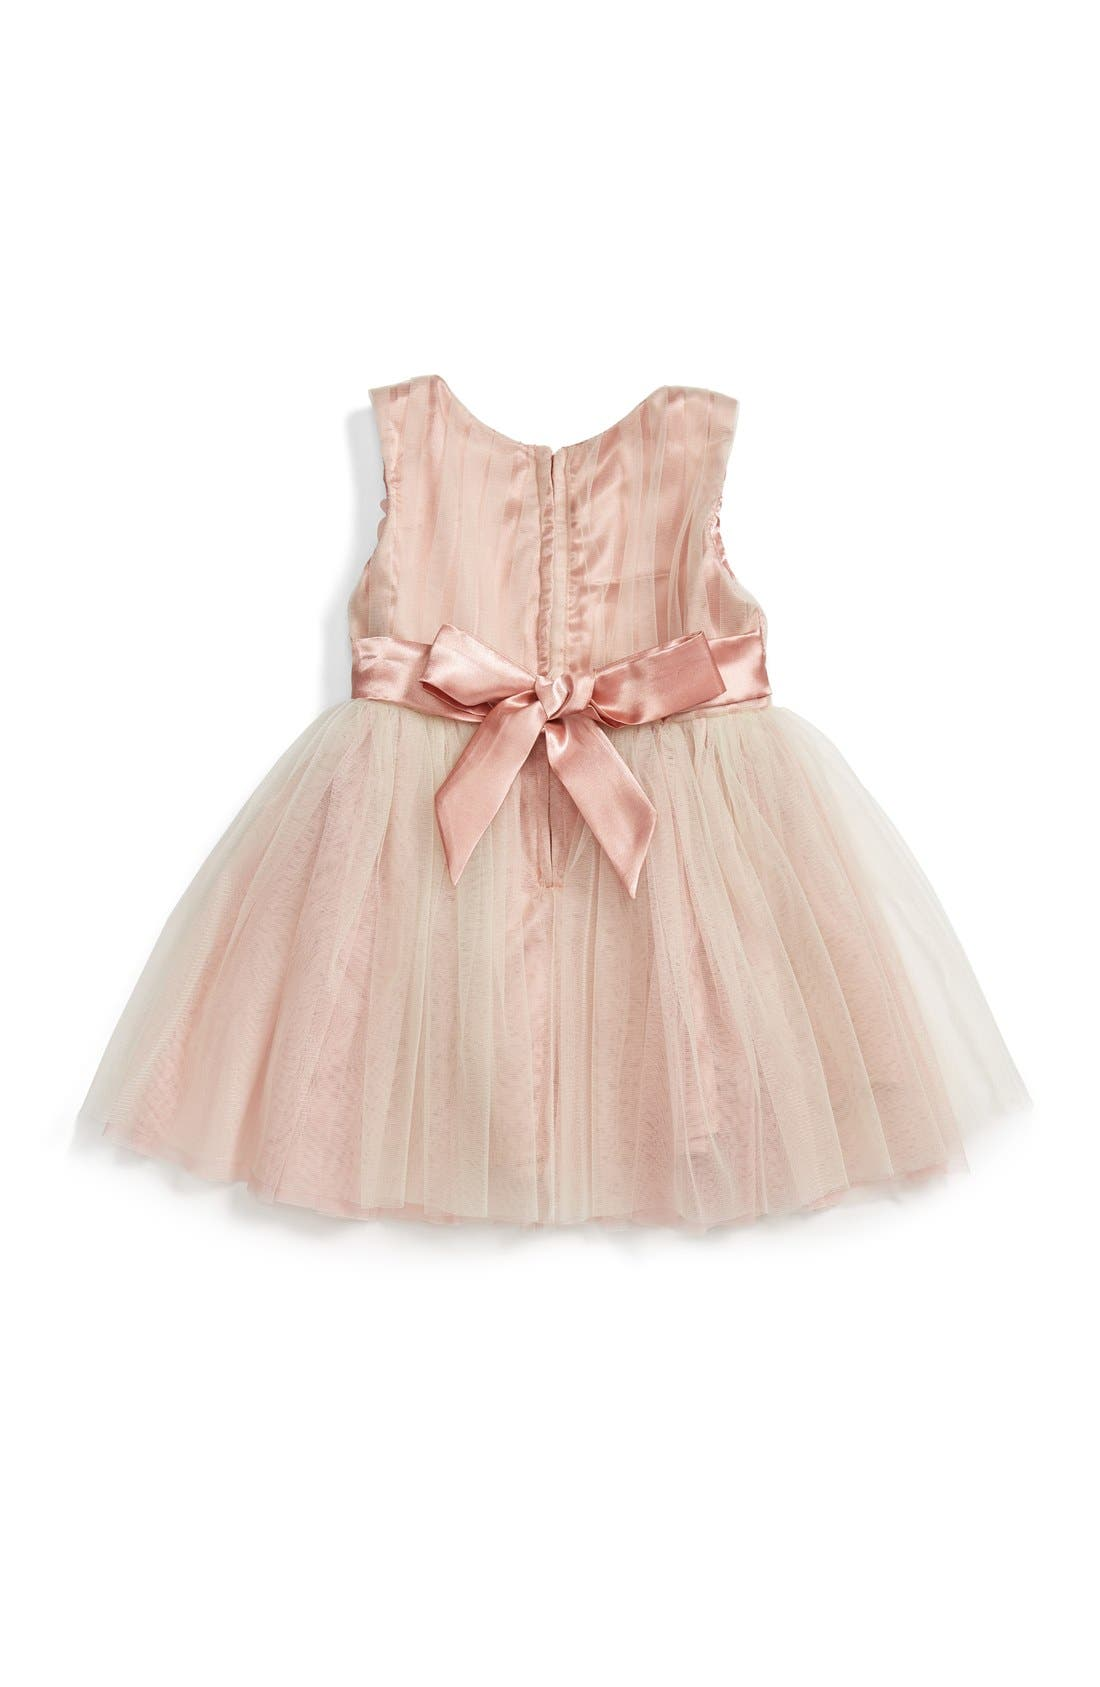 Sleeveless Rosette Tulle Dress,                             Alternate thumbnail 2, color,                             Taupe